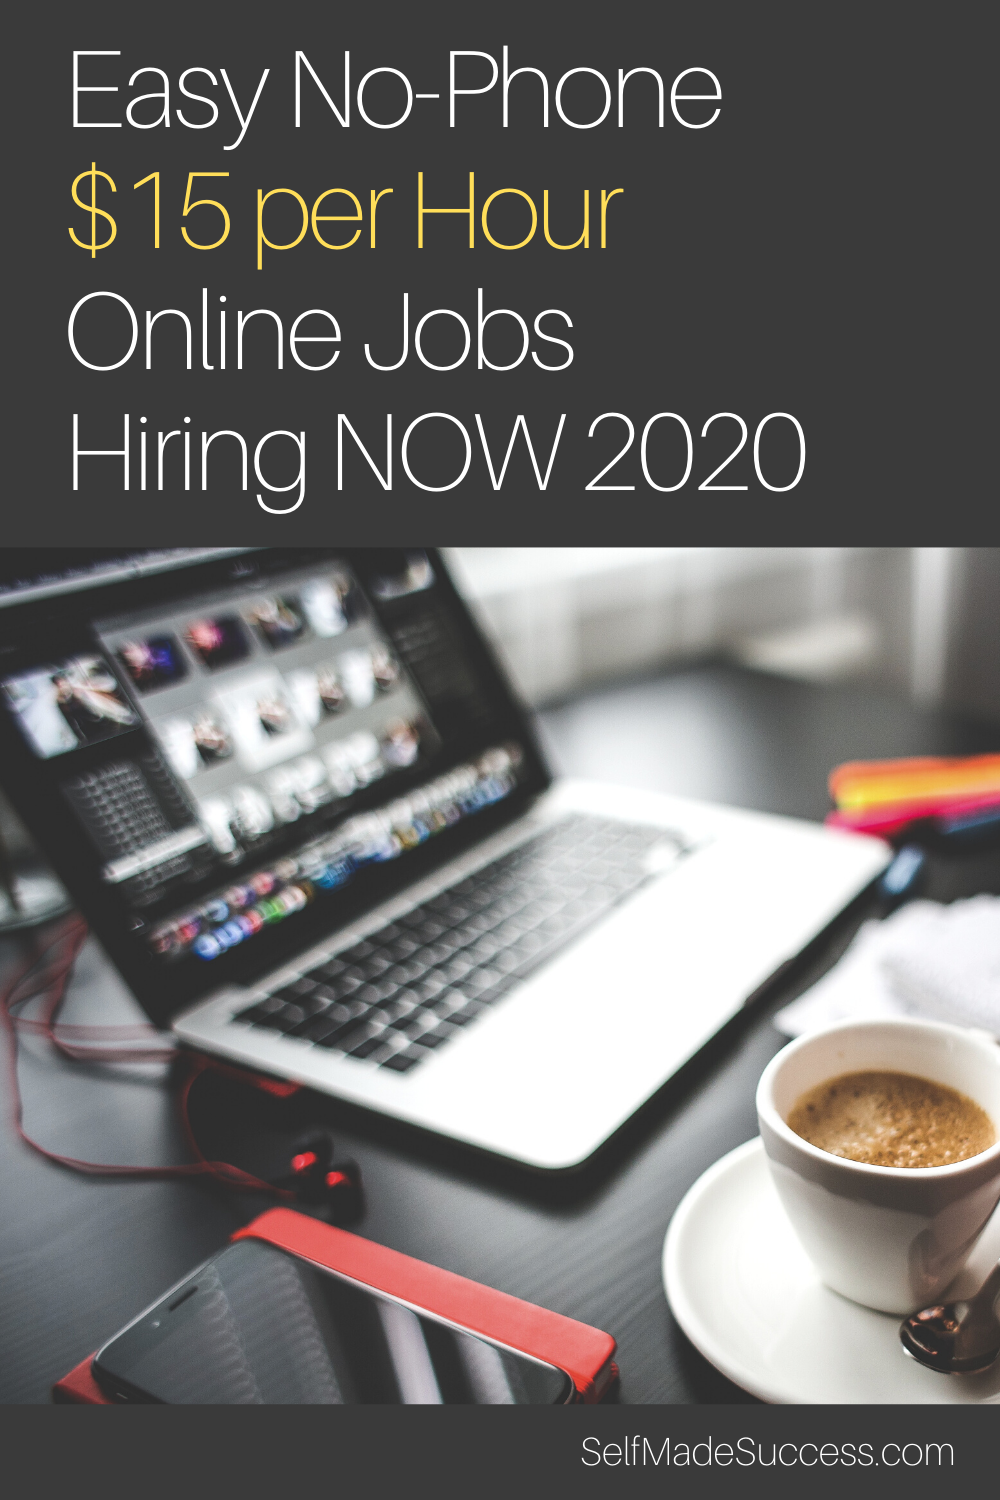 Easy No Phone 15 Per Hour Online Jobs Hiring Now 2020 Self Made Success Online Jobs Bored At Work Work From Home Careers